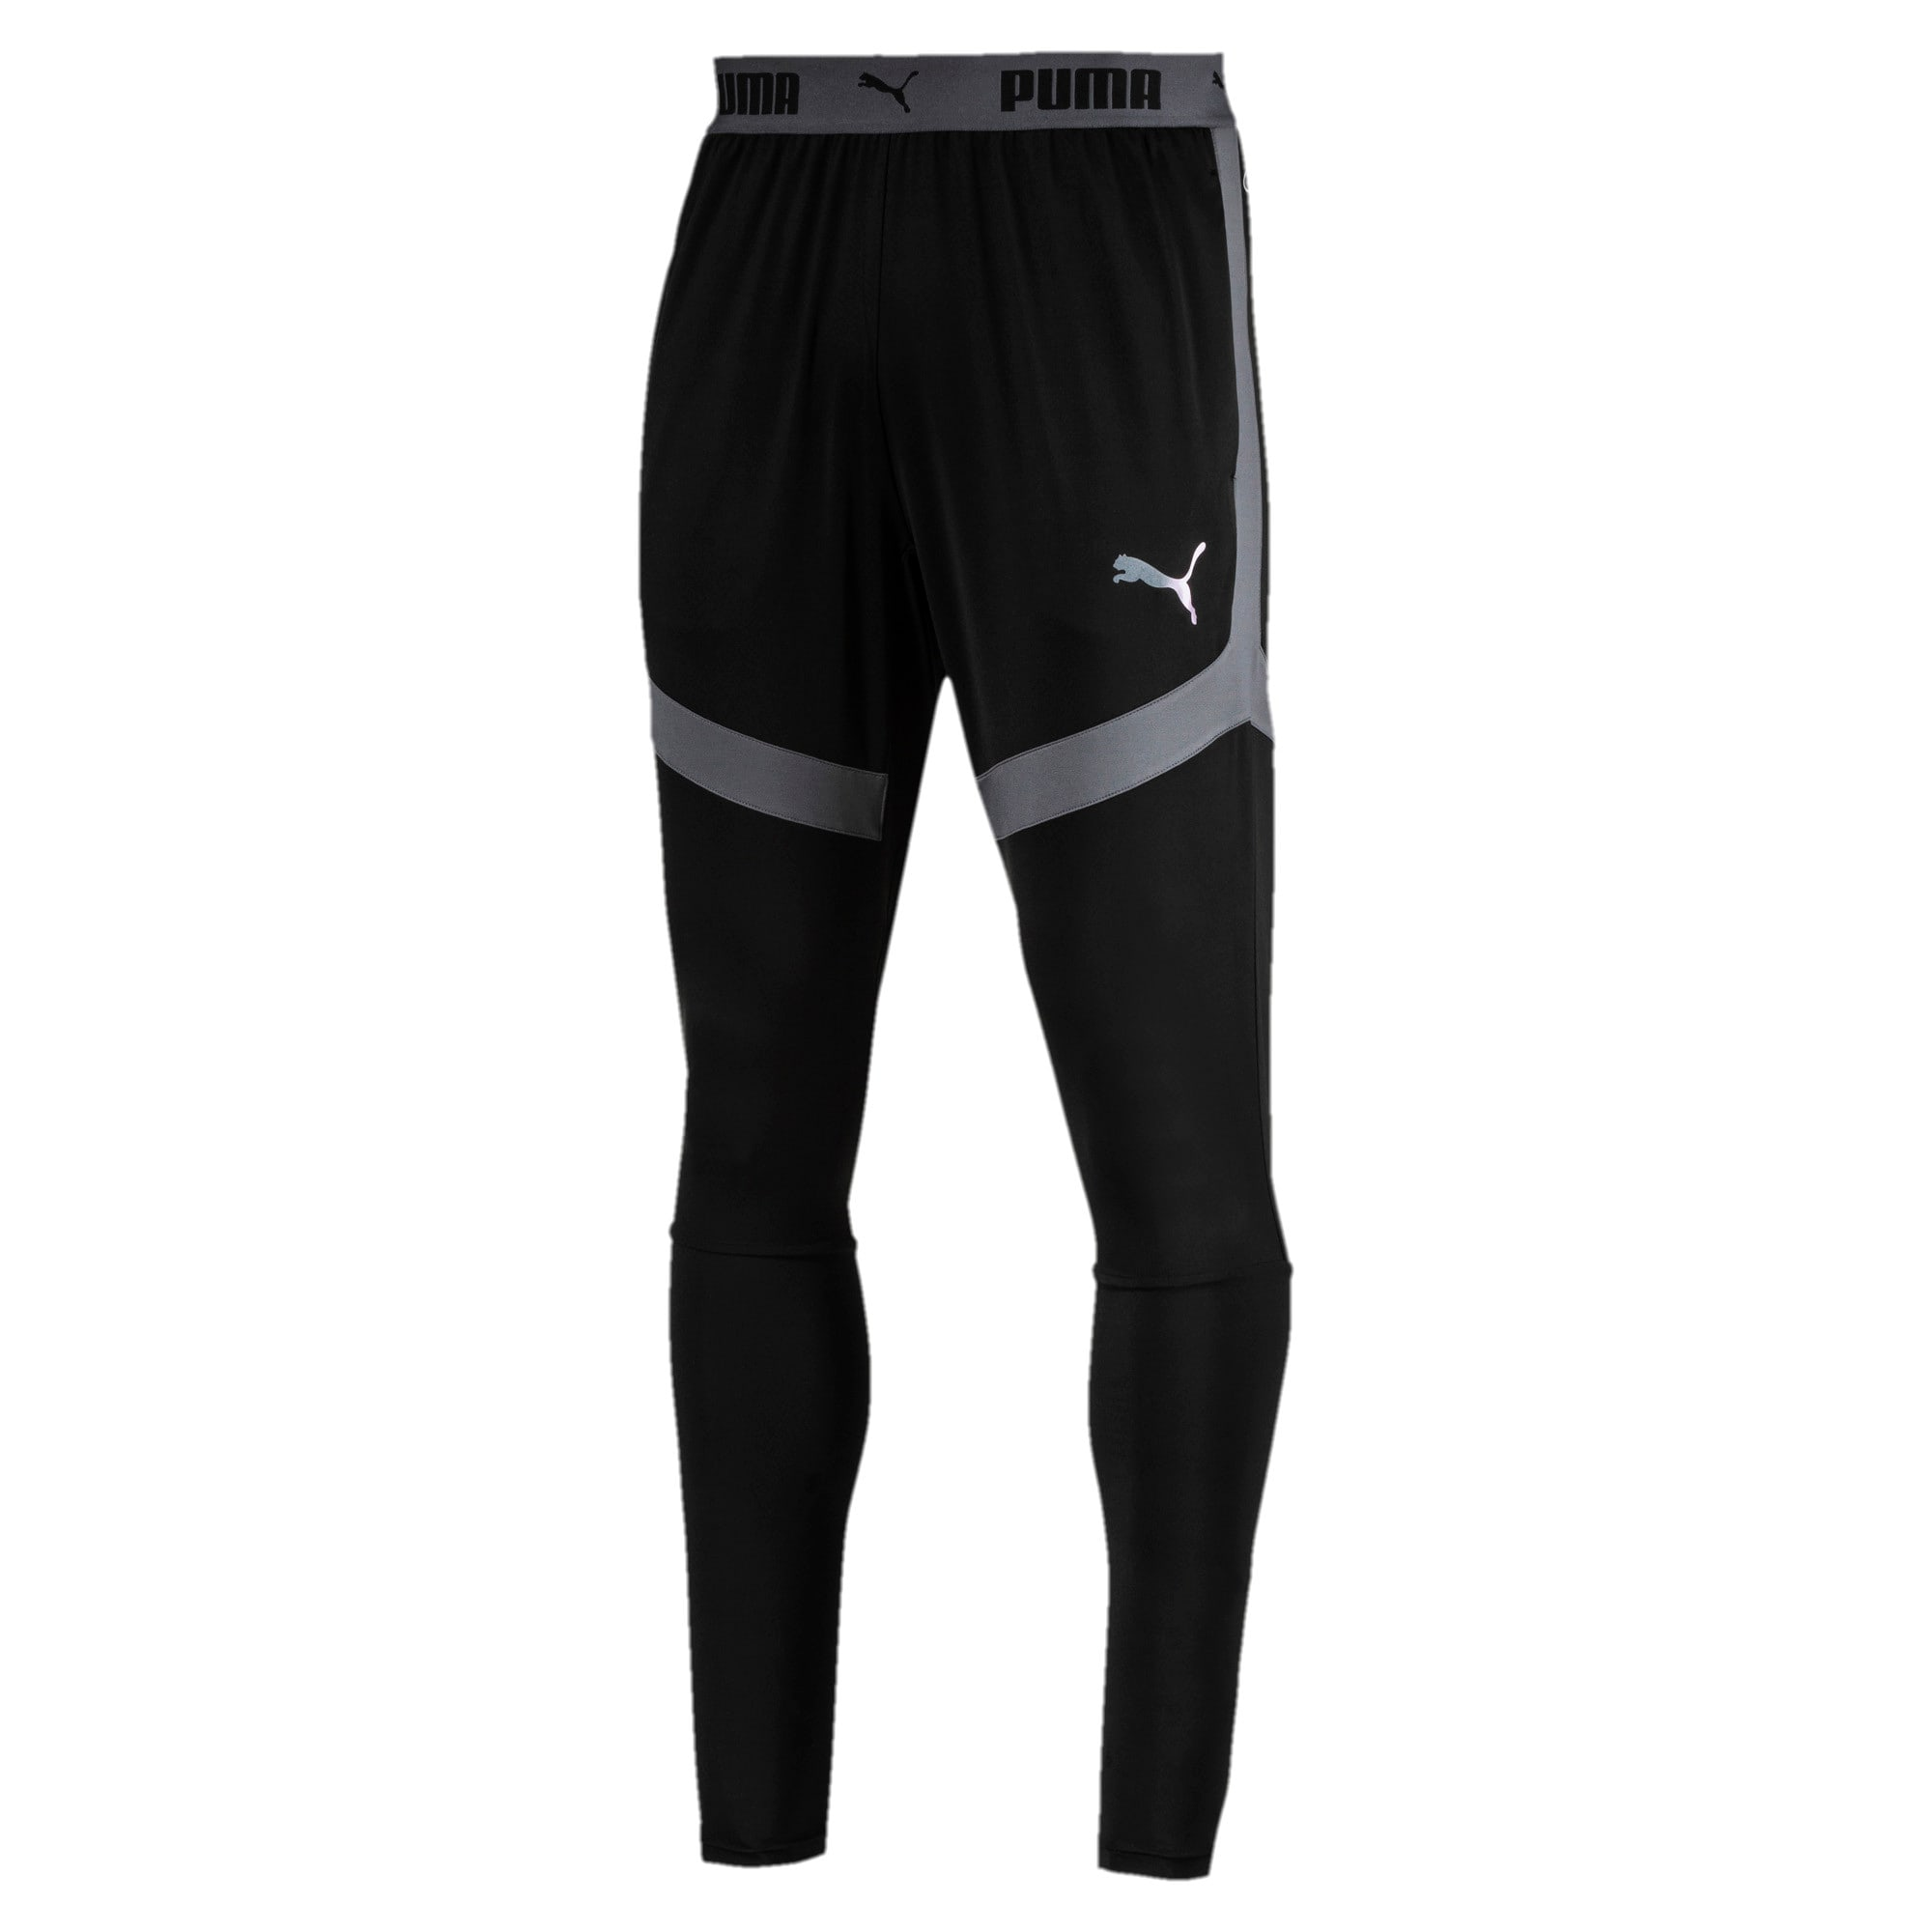 Thumbnail 1 of ftblNXT Men's Pro Pants, Puma Black-Iron Gate, medium